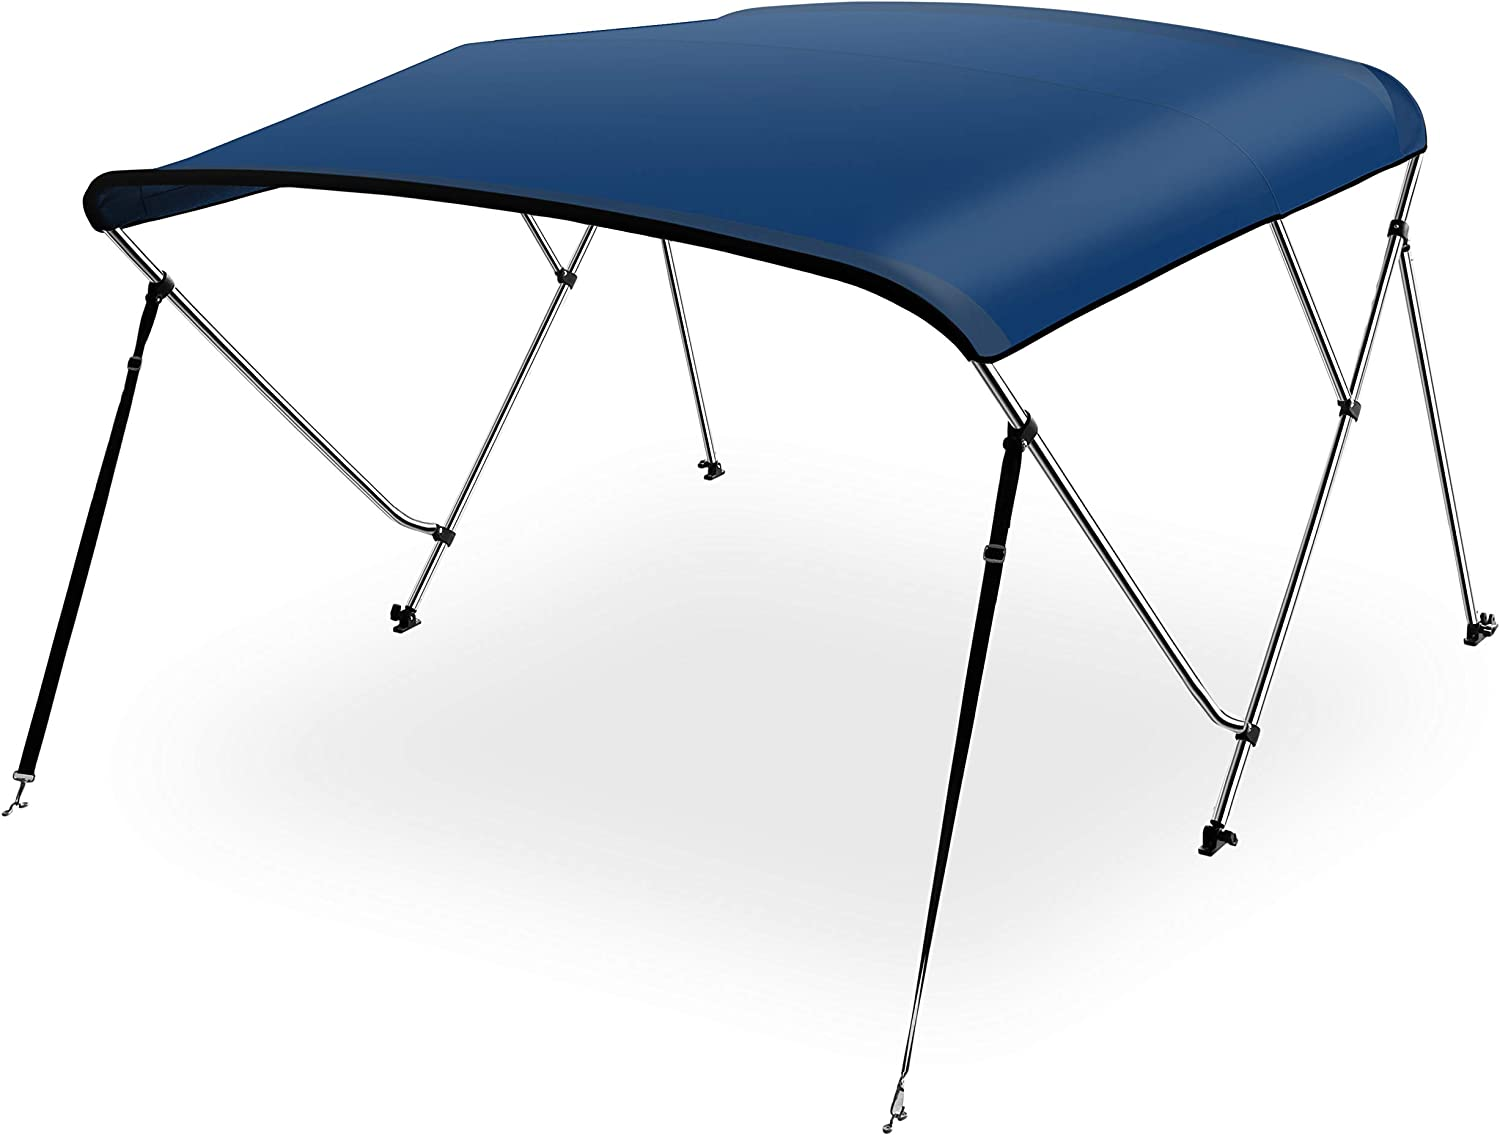 """SereneLife Waterproof Boat Bimini Top Cover - 67-72"""" W 3 Bow Bimini Top Canvas Sun Shade Boat Canopy 1"""" Double Wall Alu Frame Tube, 2 Straps 2 Rear Support Poles, Storage Boot SLBT3NAV672 (Navy Blue)"""